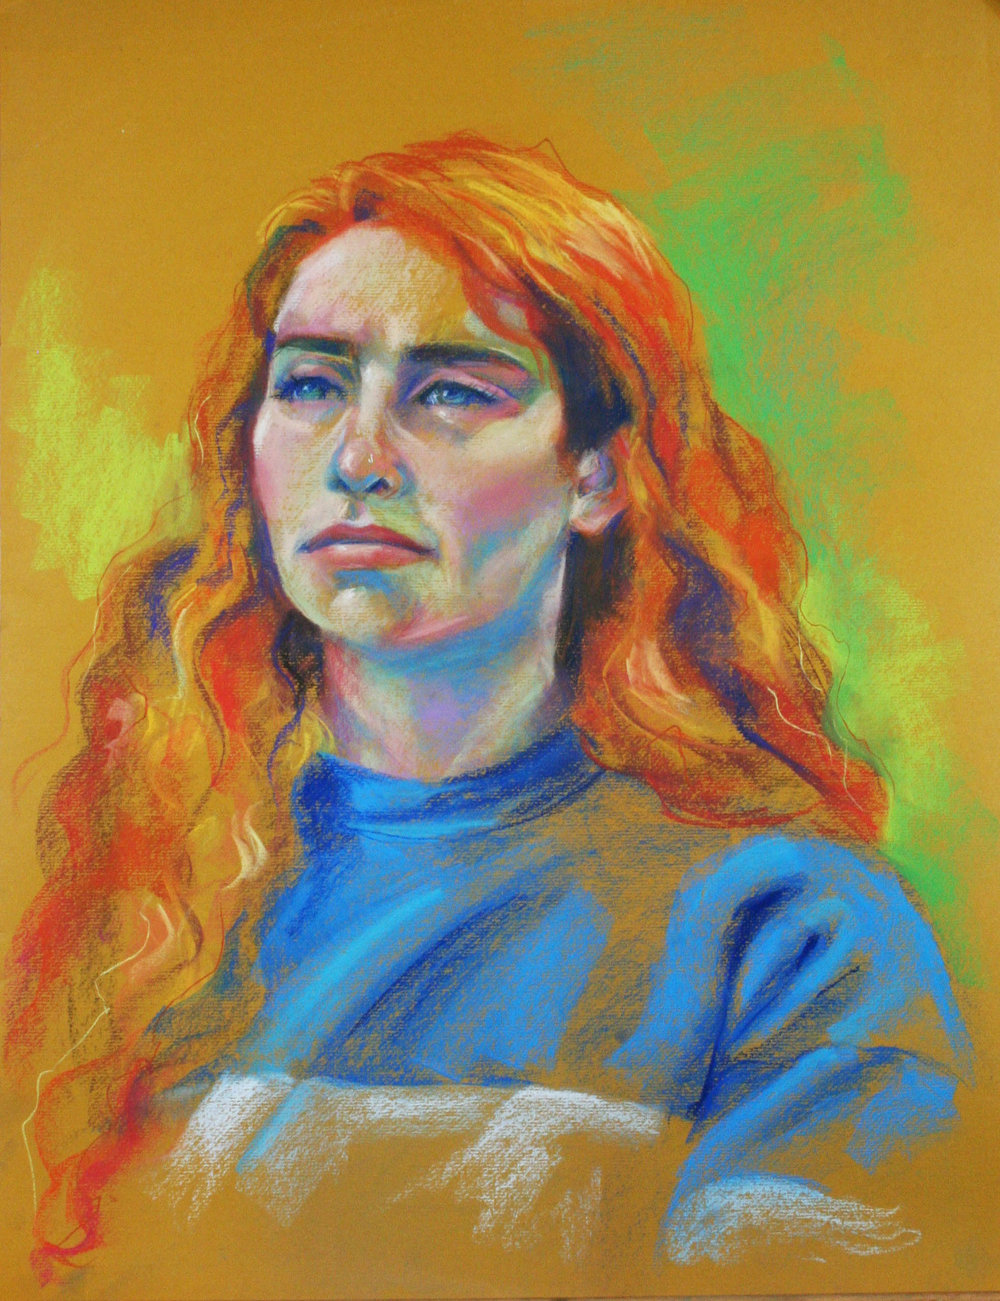 Sarah Curry did this pastel drawing.